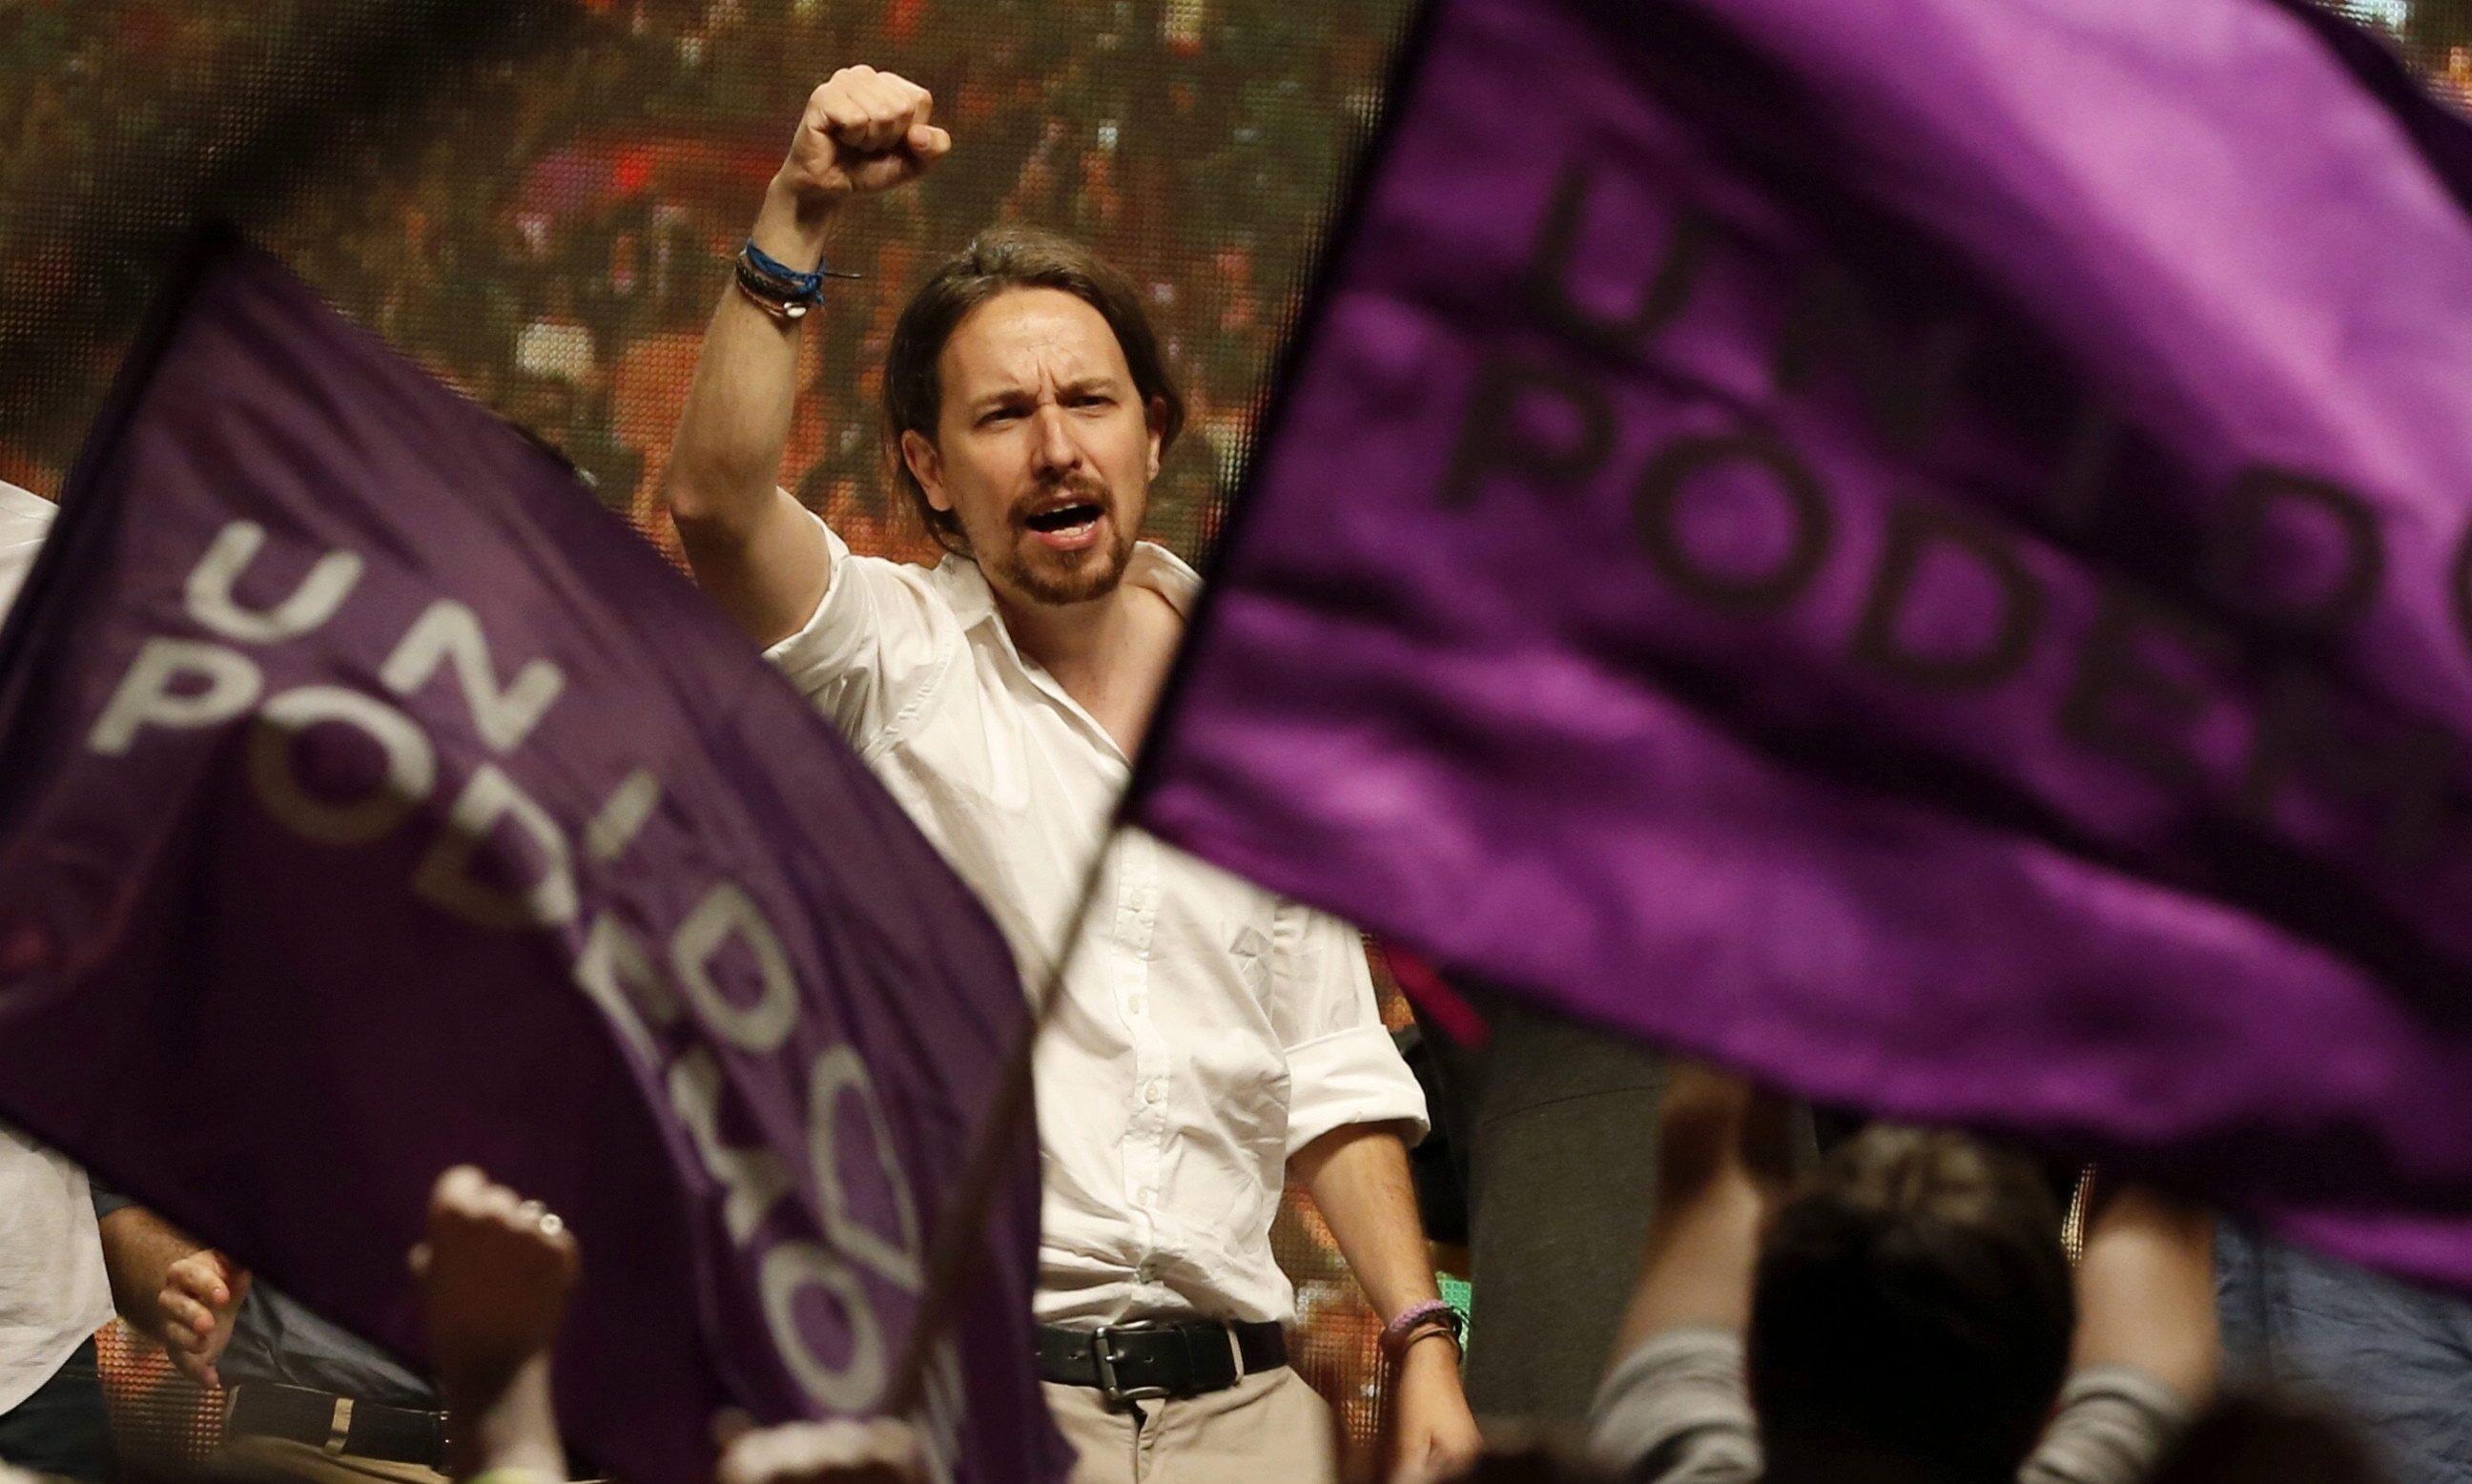 Podemos was the dazzling new force in Spanish politics. What went wrong?